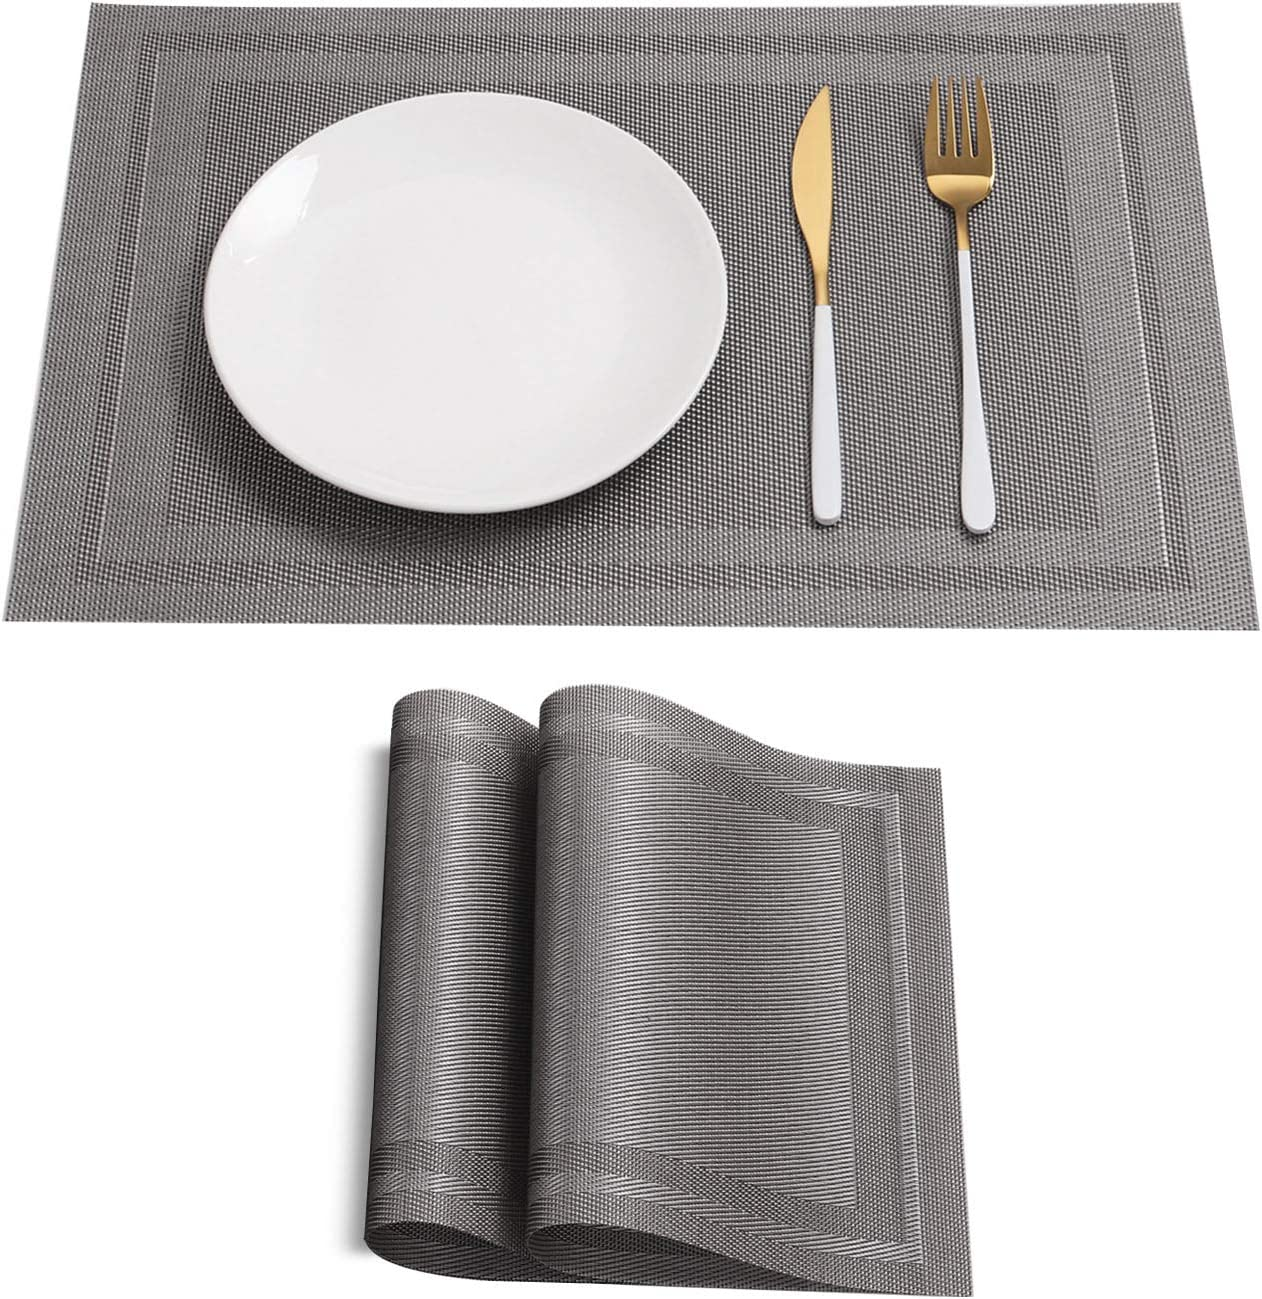 HeloHo Silver Placemats Set NEW before 67% OFF of fixed price selling of Ma 2 Heat-Resistant Kitchen Table